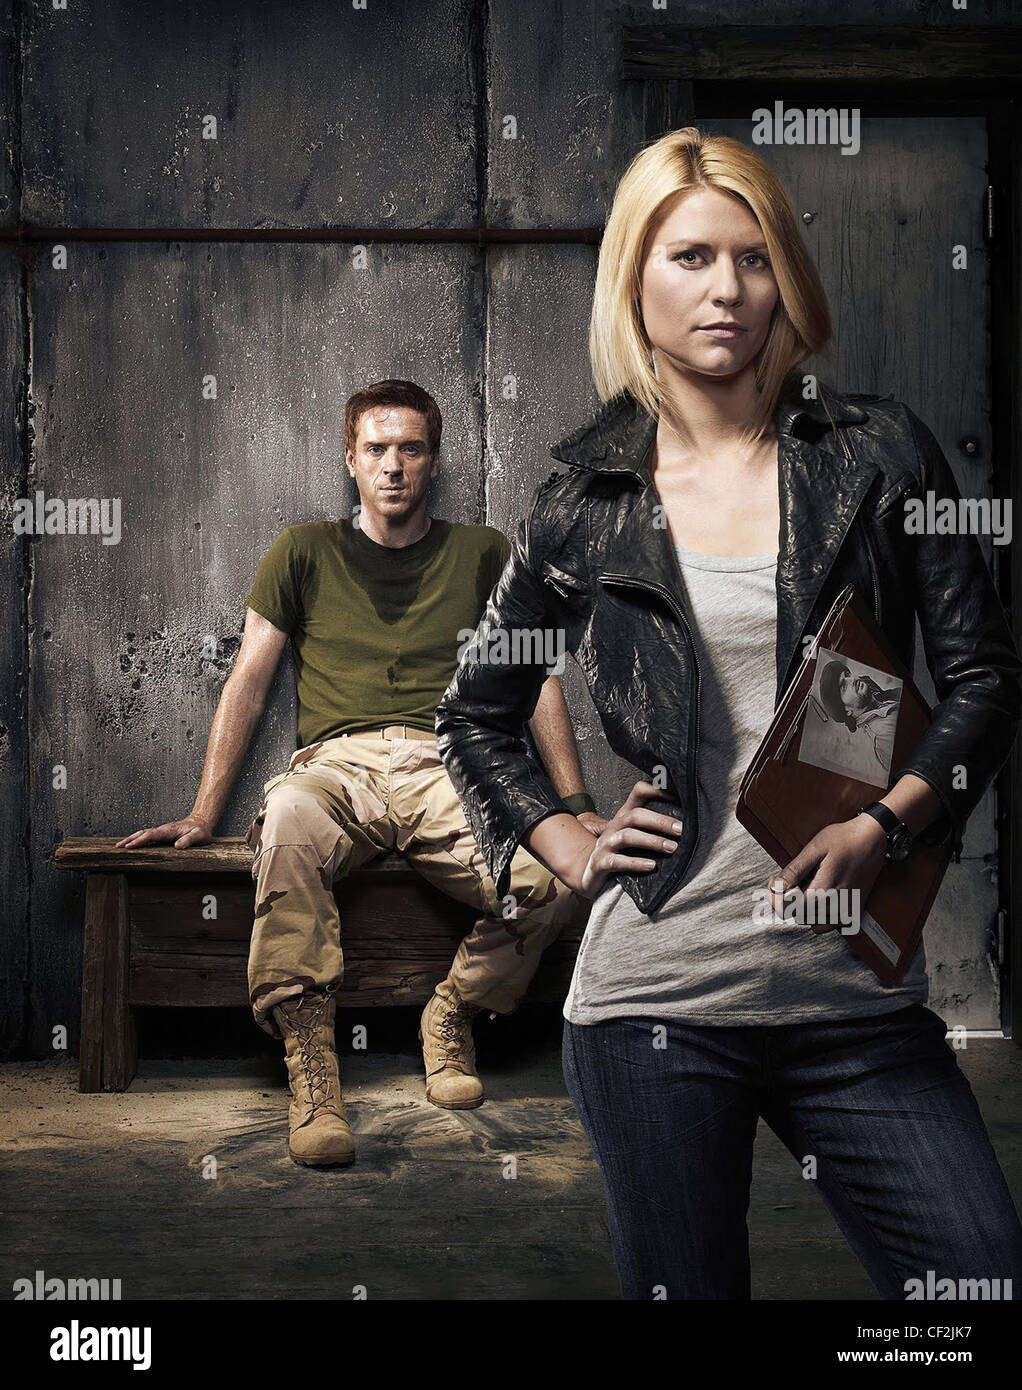 HOMELAND (TV) (2011) DAMIAN LEWIS, CLAIRE DANES 002 MOVIESTORE COLLECTION LTD - Stock Image